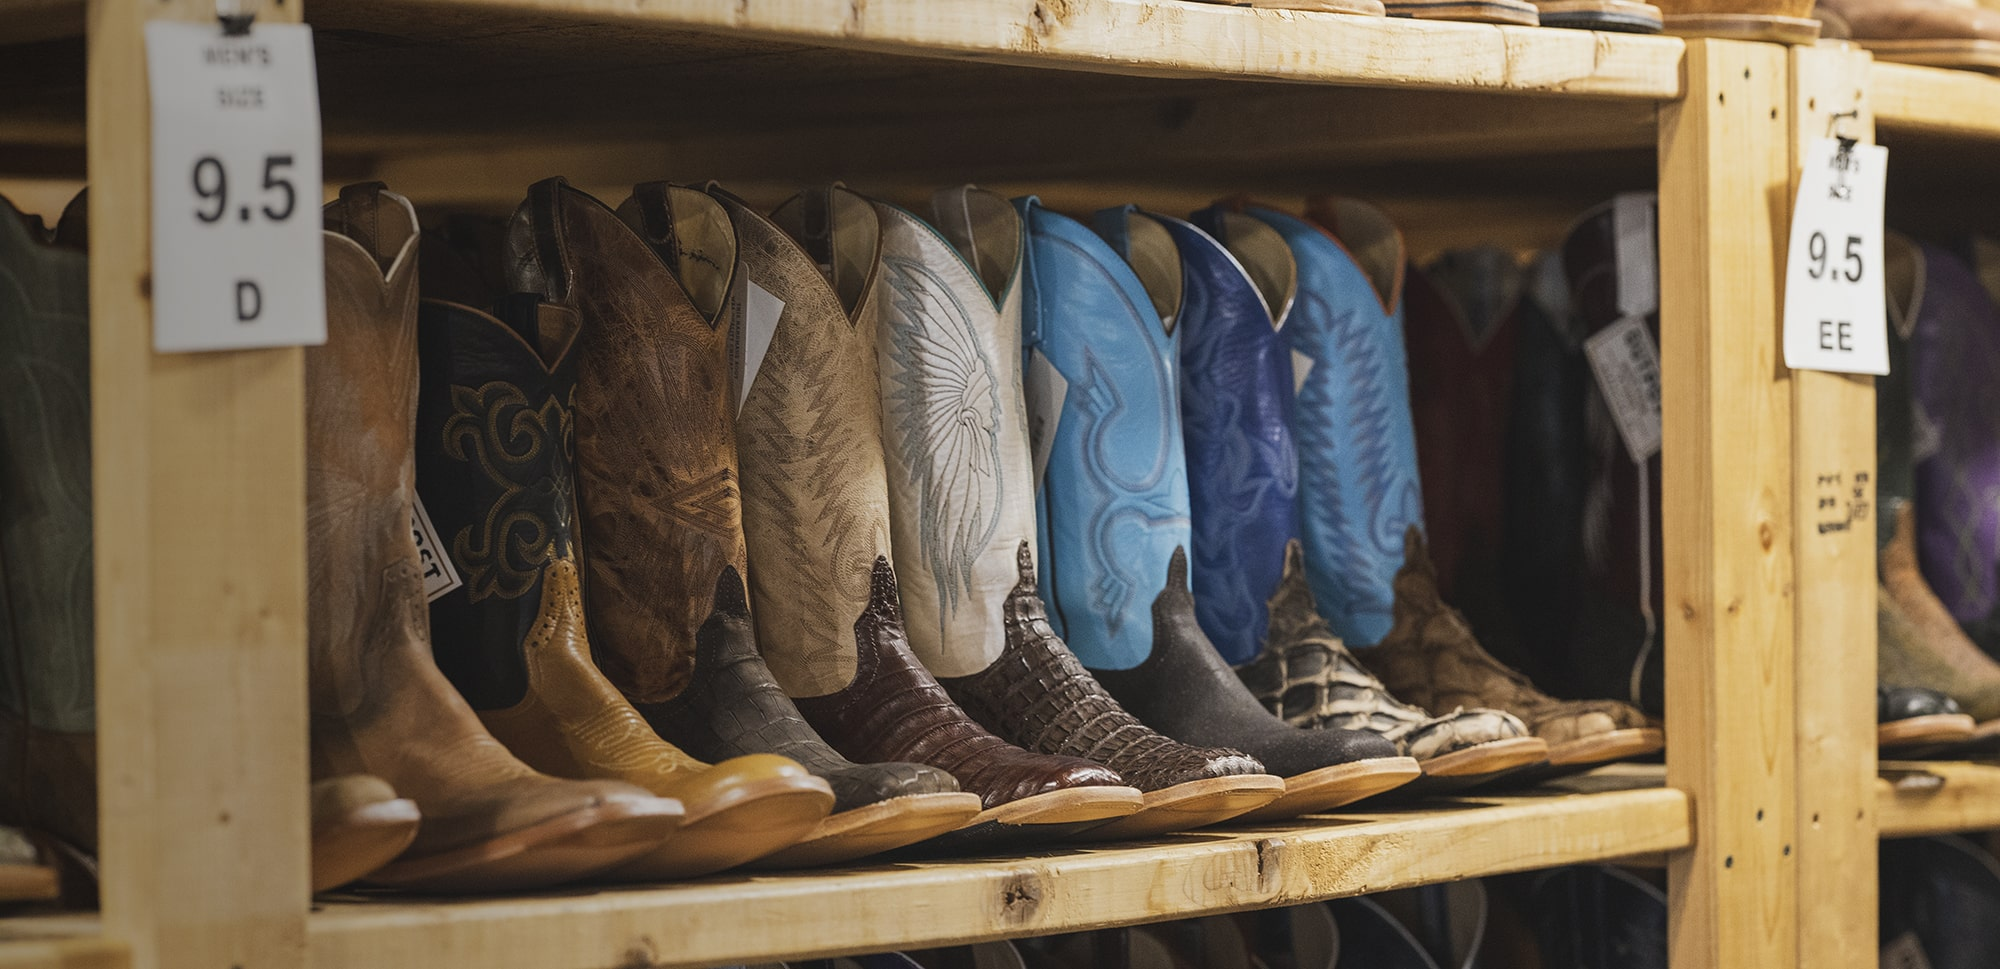 U.S.A made, built by hand, one-of-a-kind cowboy boots,all designed in house by us here at Outpost Western Store.